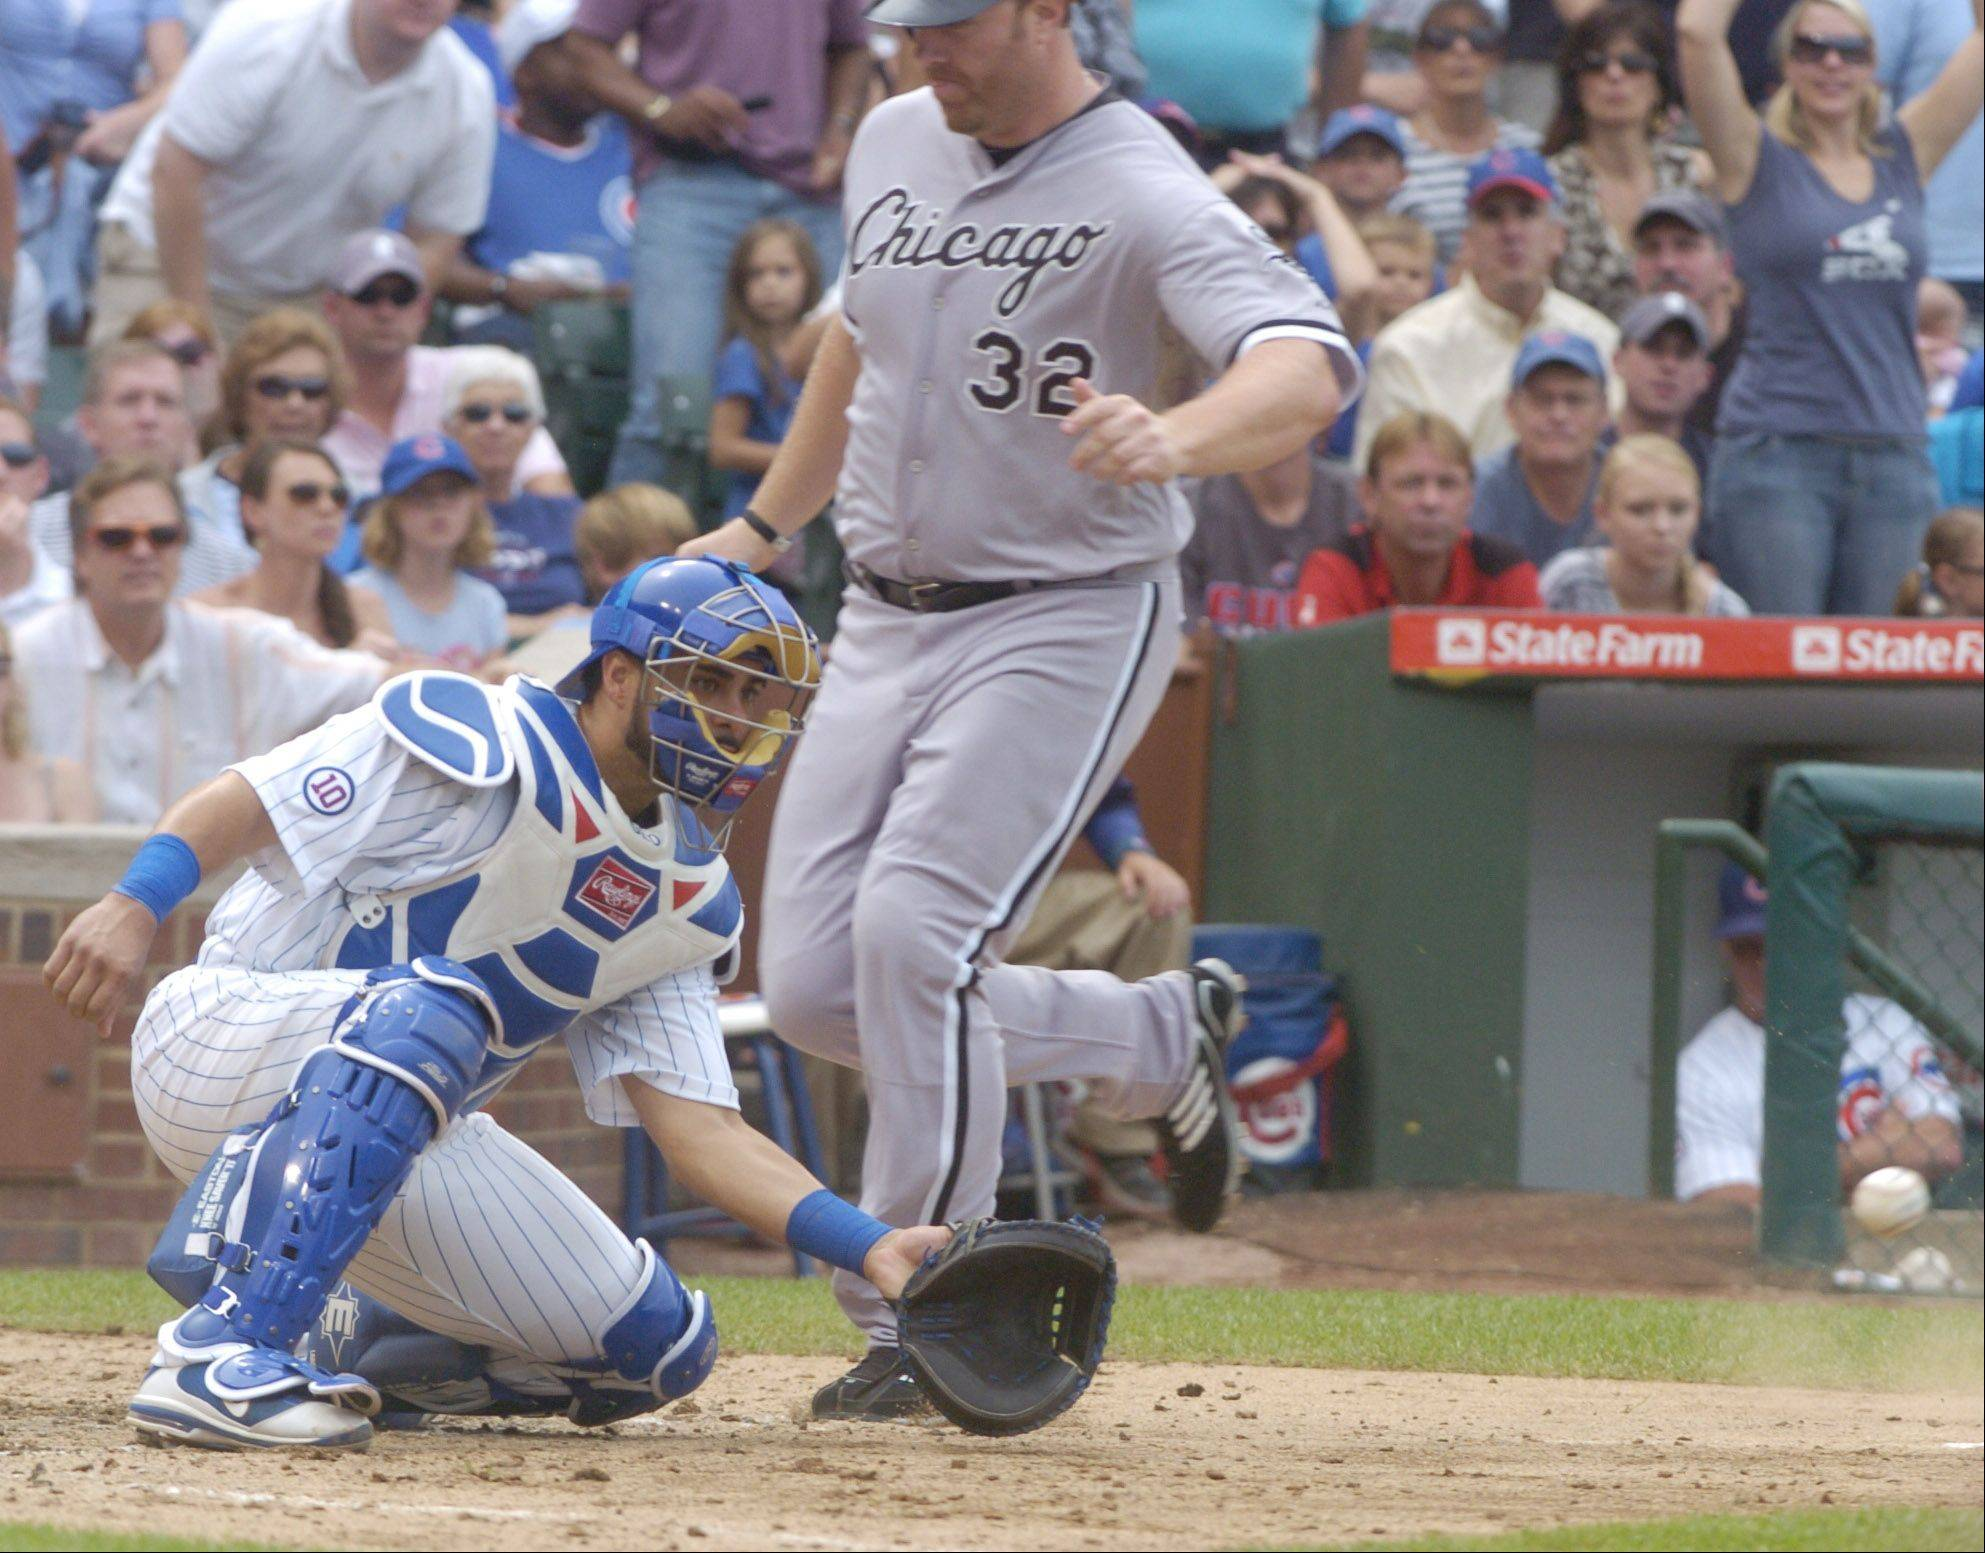 Adam Dunn of the White Sox scores on a two-run triple by Juan Pierre of the White Sox as Cubs catcher Geovany Soto takes the late throw during Friday's game.